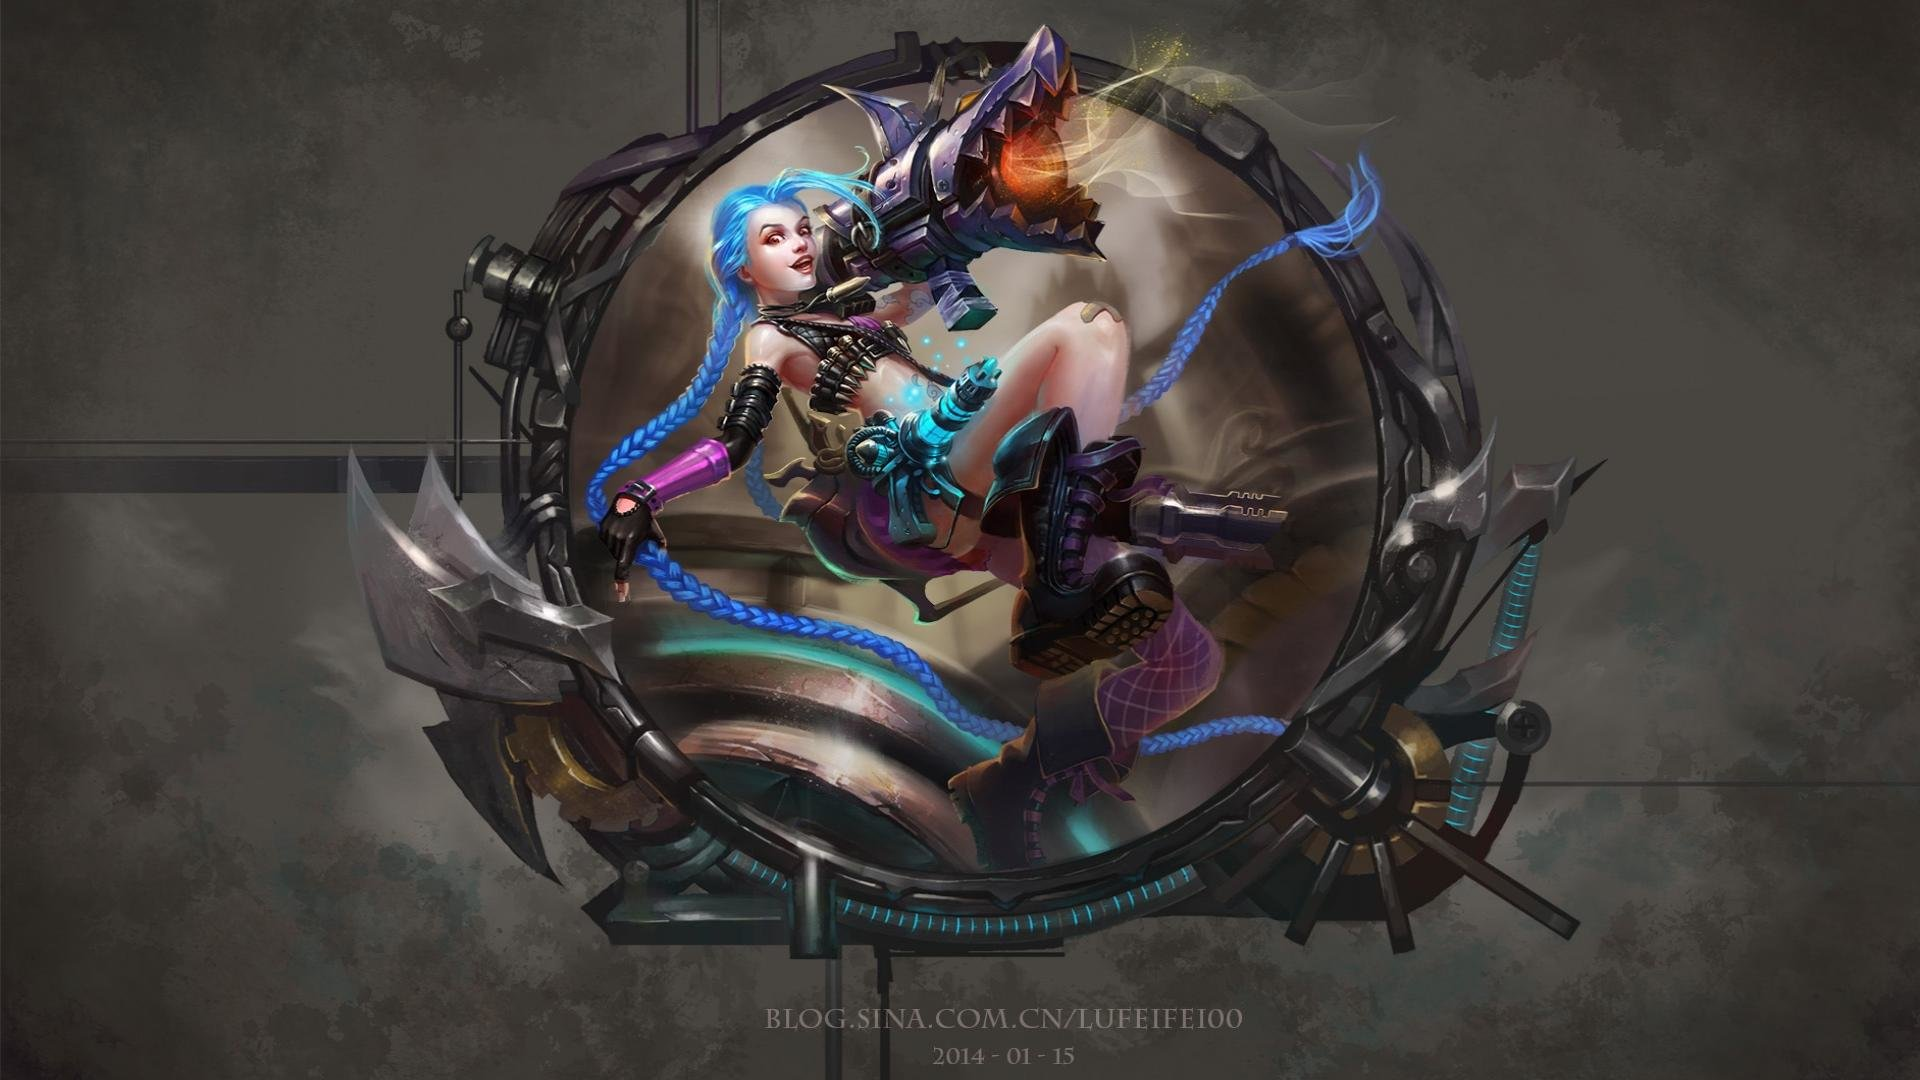 Download Hd 1920x1080 Jinx League Of Legends Desktop Wallpaper